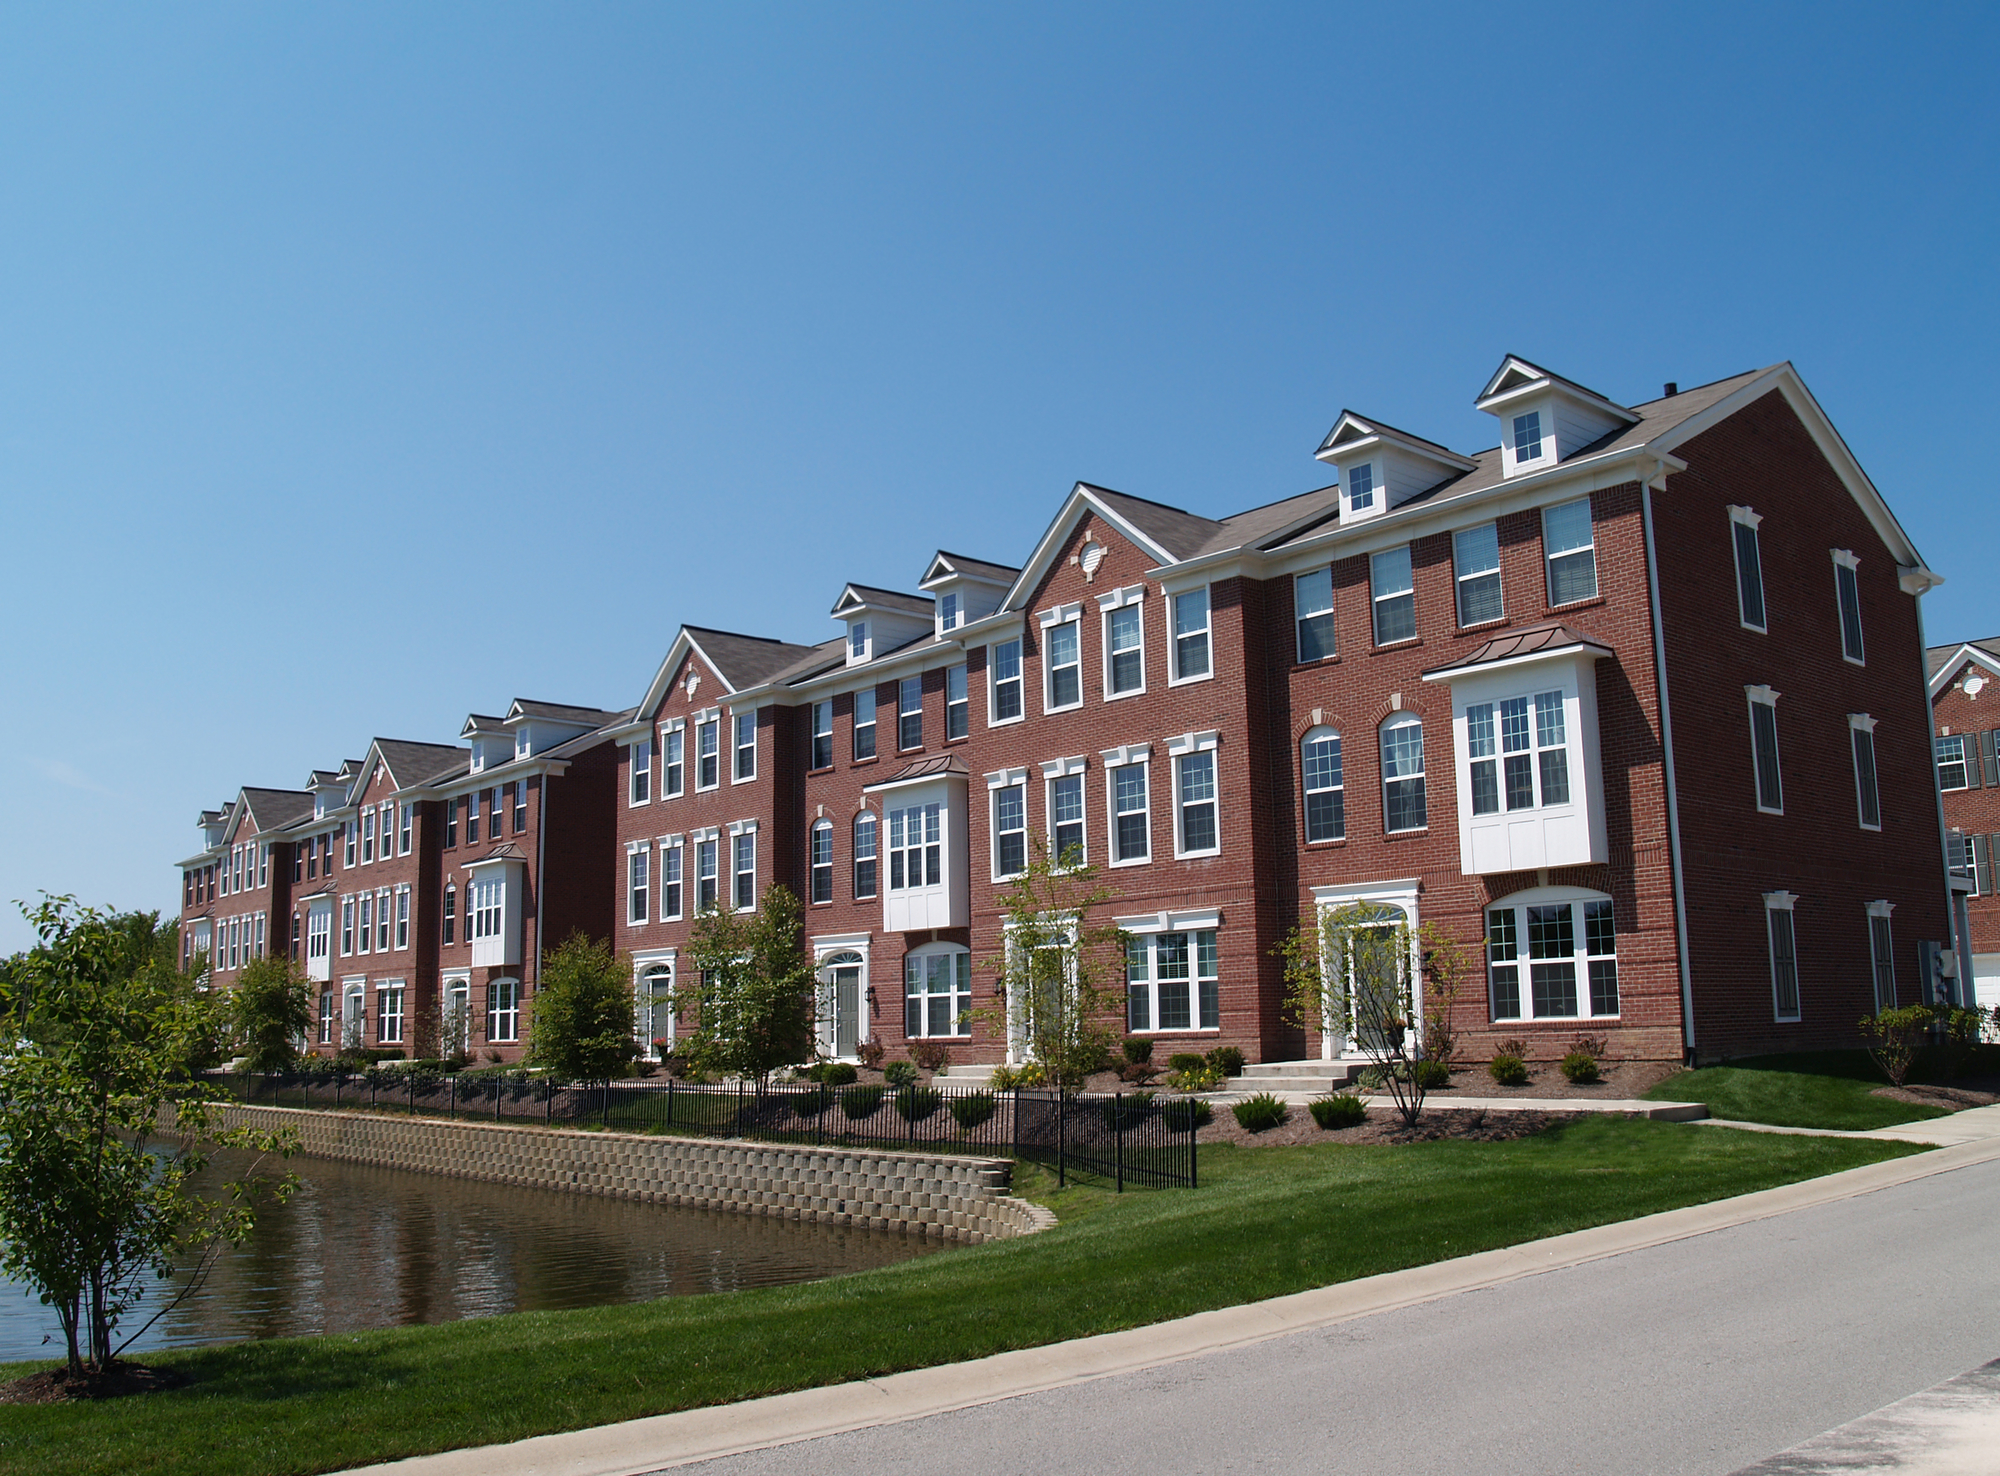 brick townhomes and condominium managed by an accredited residential manager